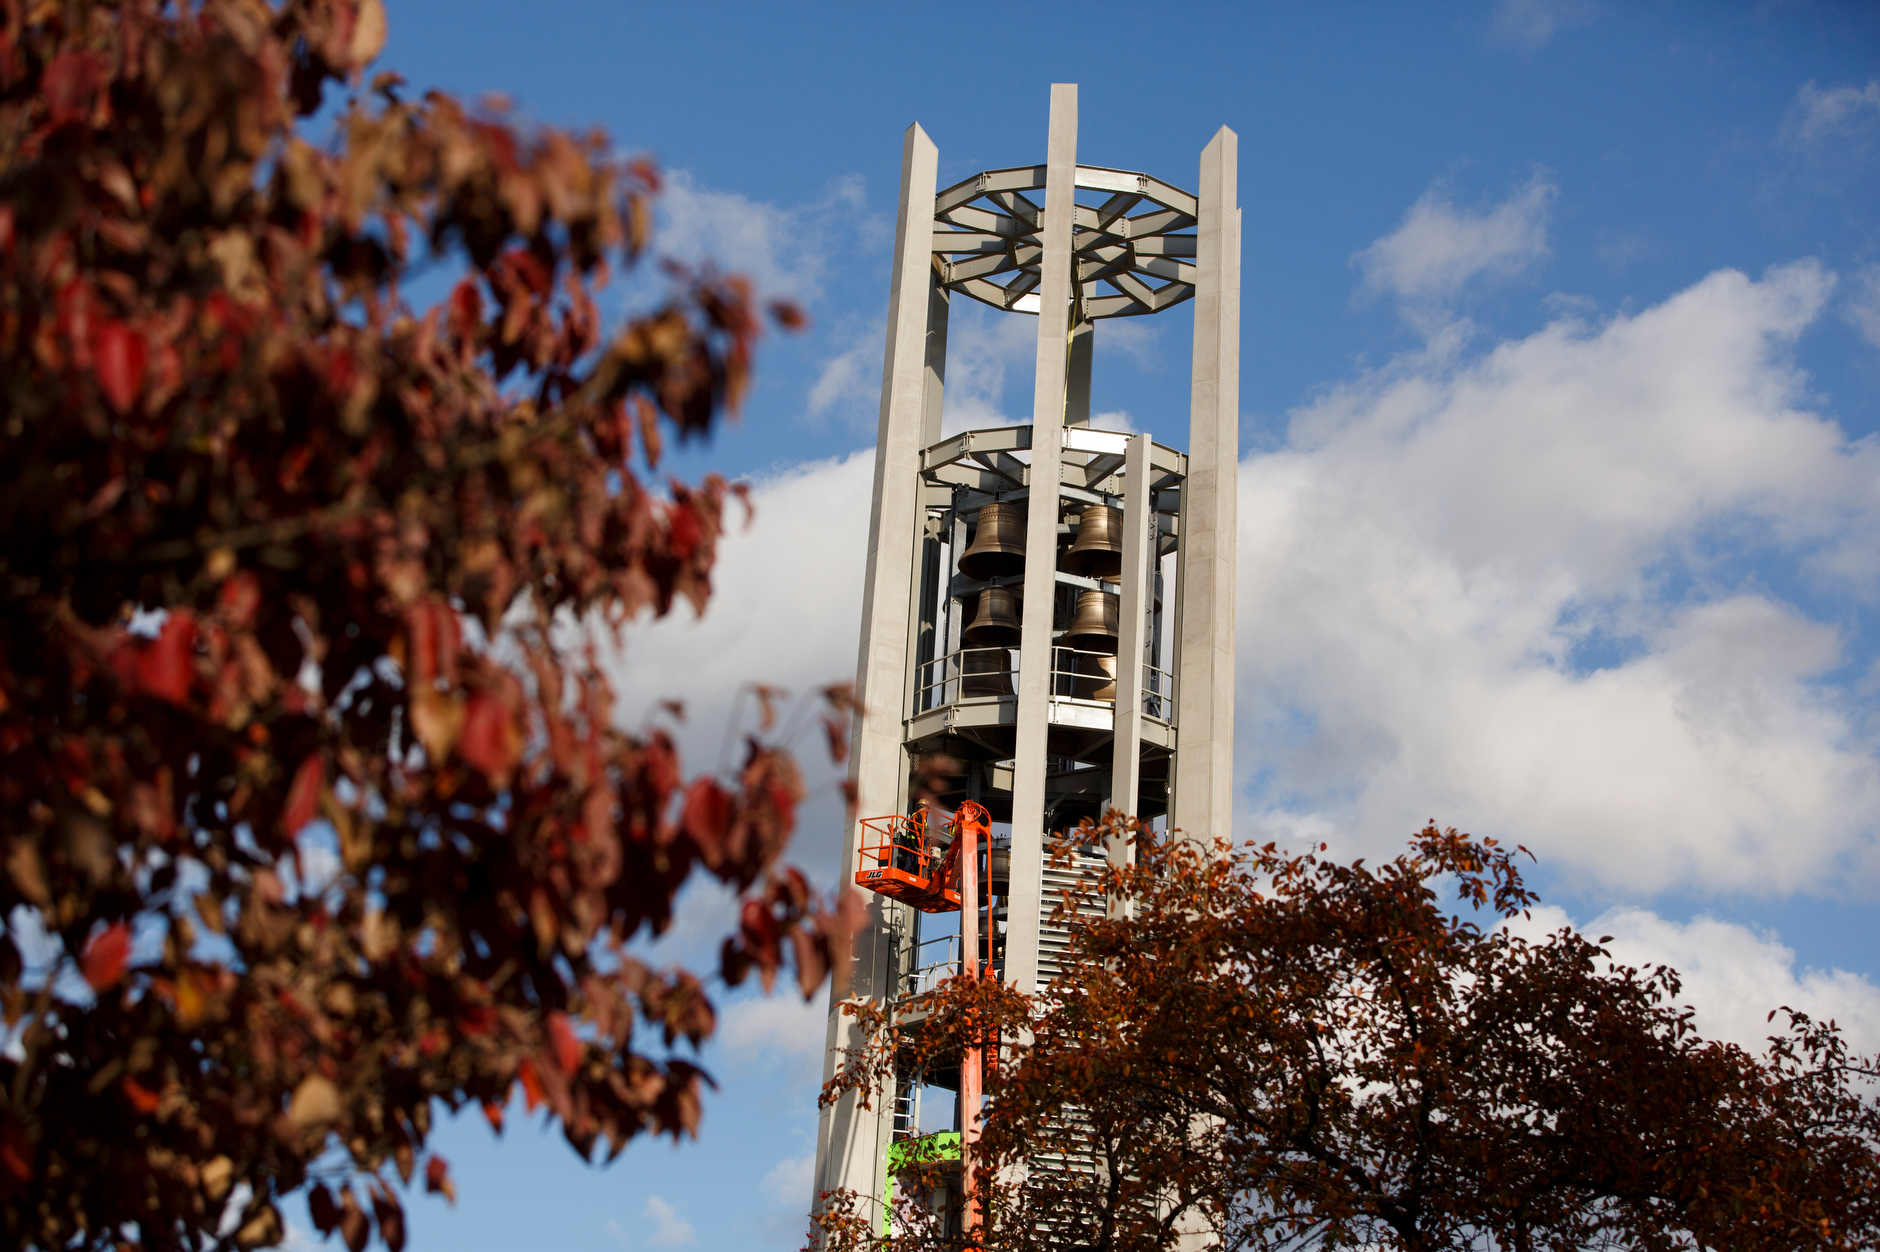 Work continues on the Arthur R. Metz Bicentennial Grand Carillon in the Arboretum at IU Bloomington on Tuesday, Oct. 22, 2019. (James Brosher/Indiana University)